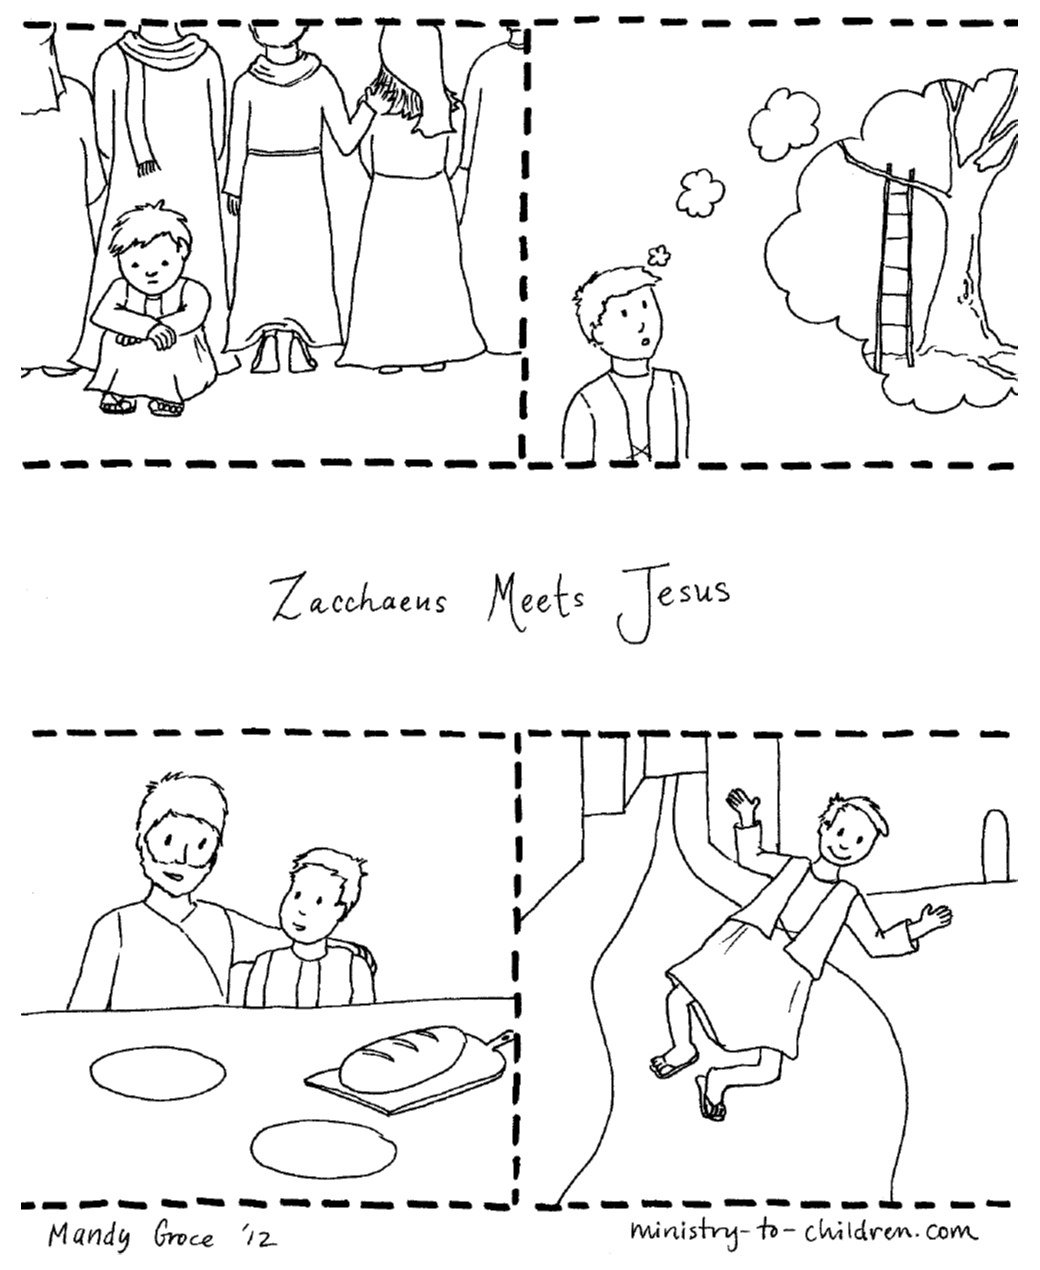 coloring pages zaccheus | Jesus And Zacchaeus Coloring Page Pictures ...